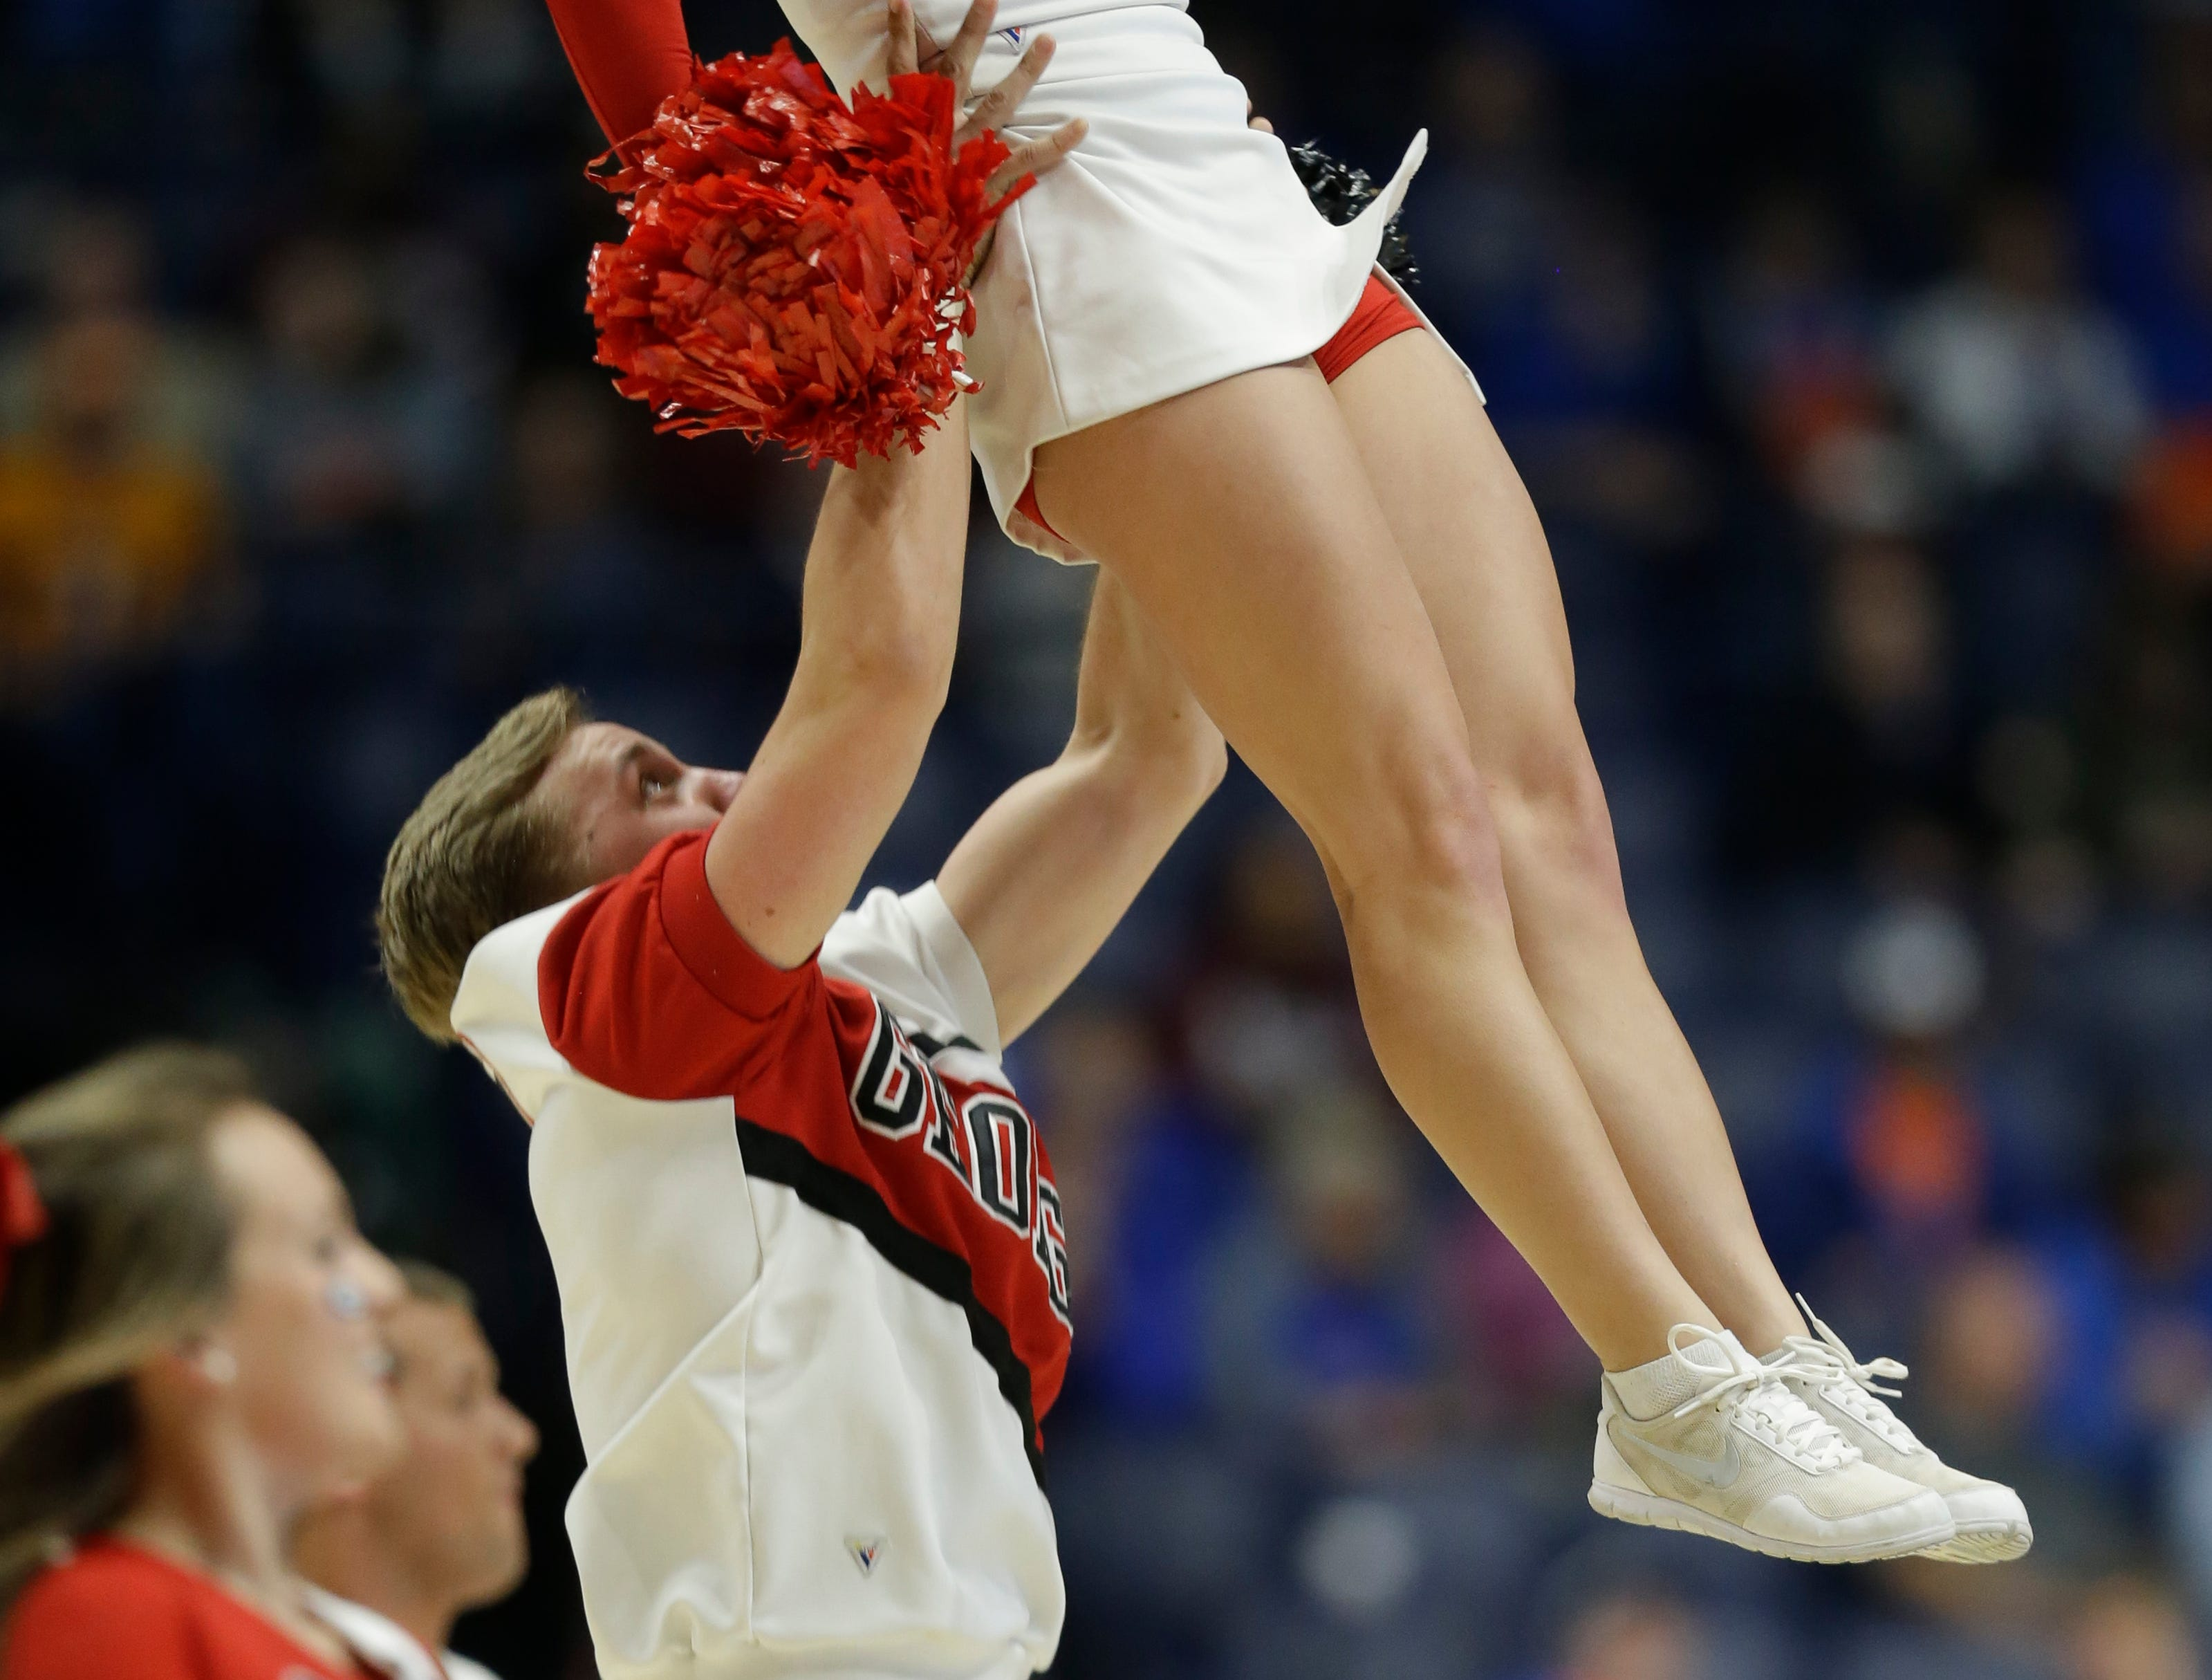 A Georgia cheerleader performs during the first half of an NCAA college basketball game against Mississippi State in the Southeastern Conference tournament in Nashville, Tenn., Thursday, March 10, 2016. (AP Photo/Mark Humphrey)